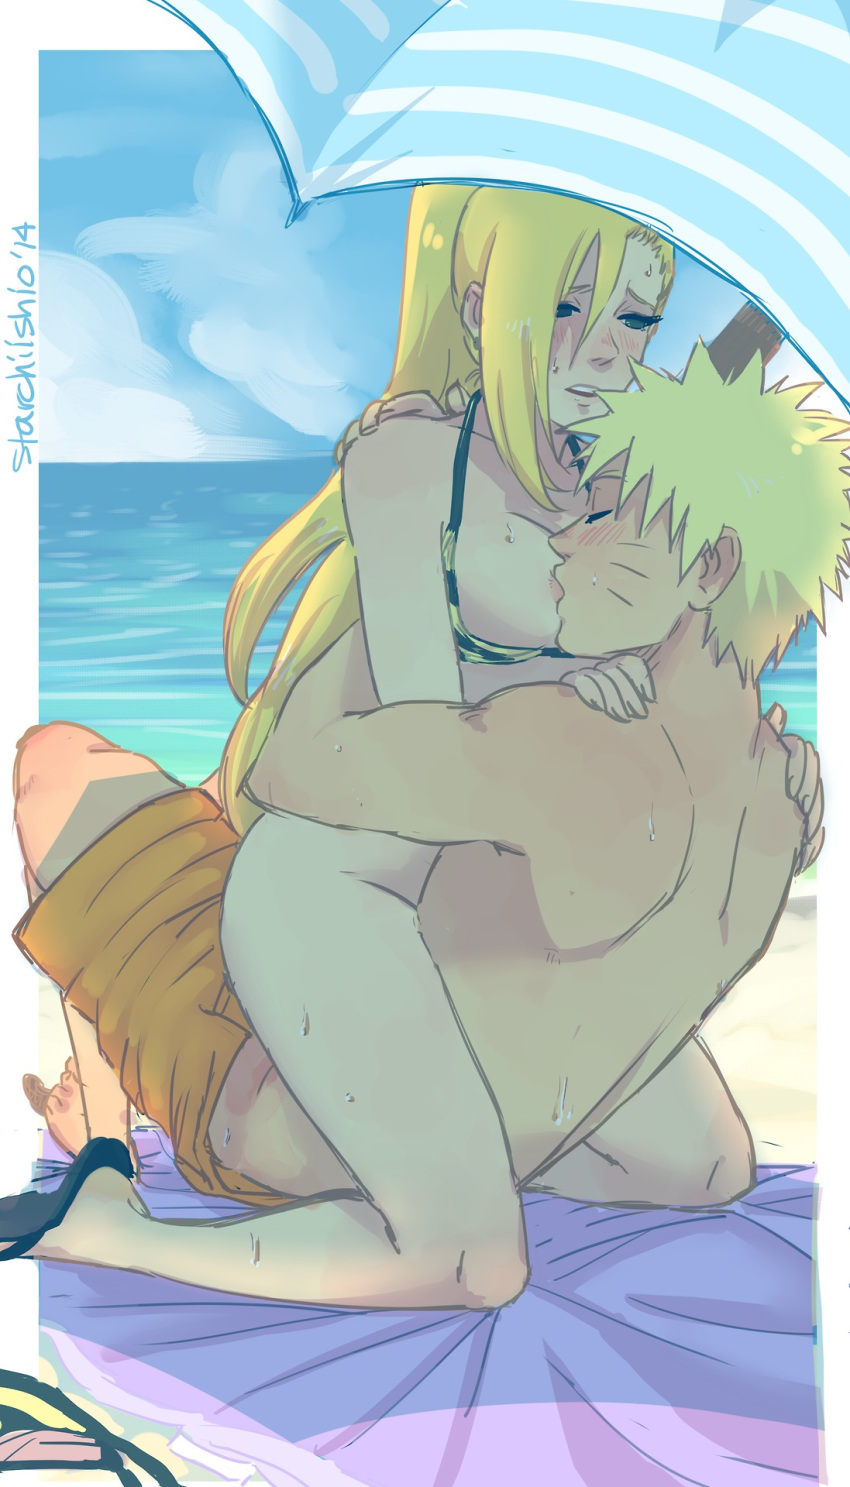 fanfiction ino cheats naruto on Horizon in the middle of nowhere uncensored